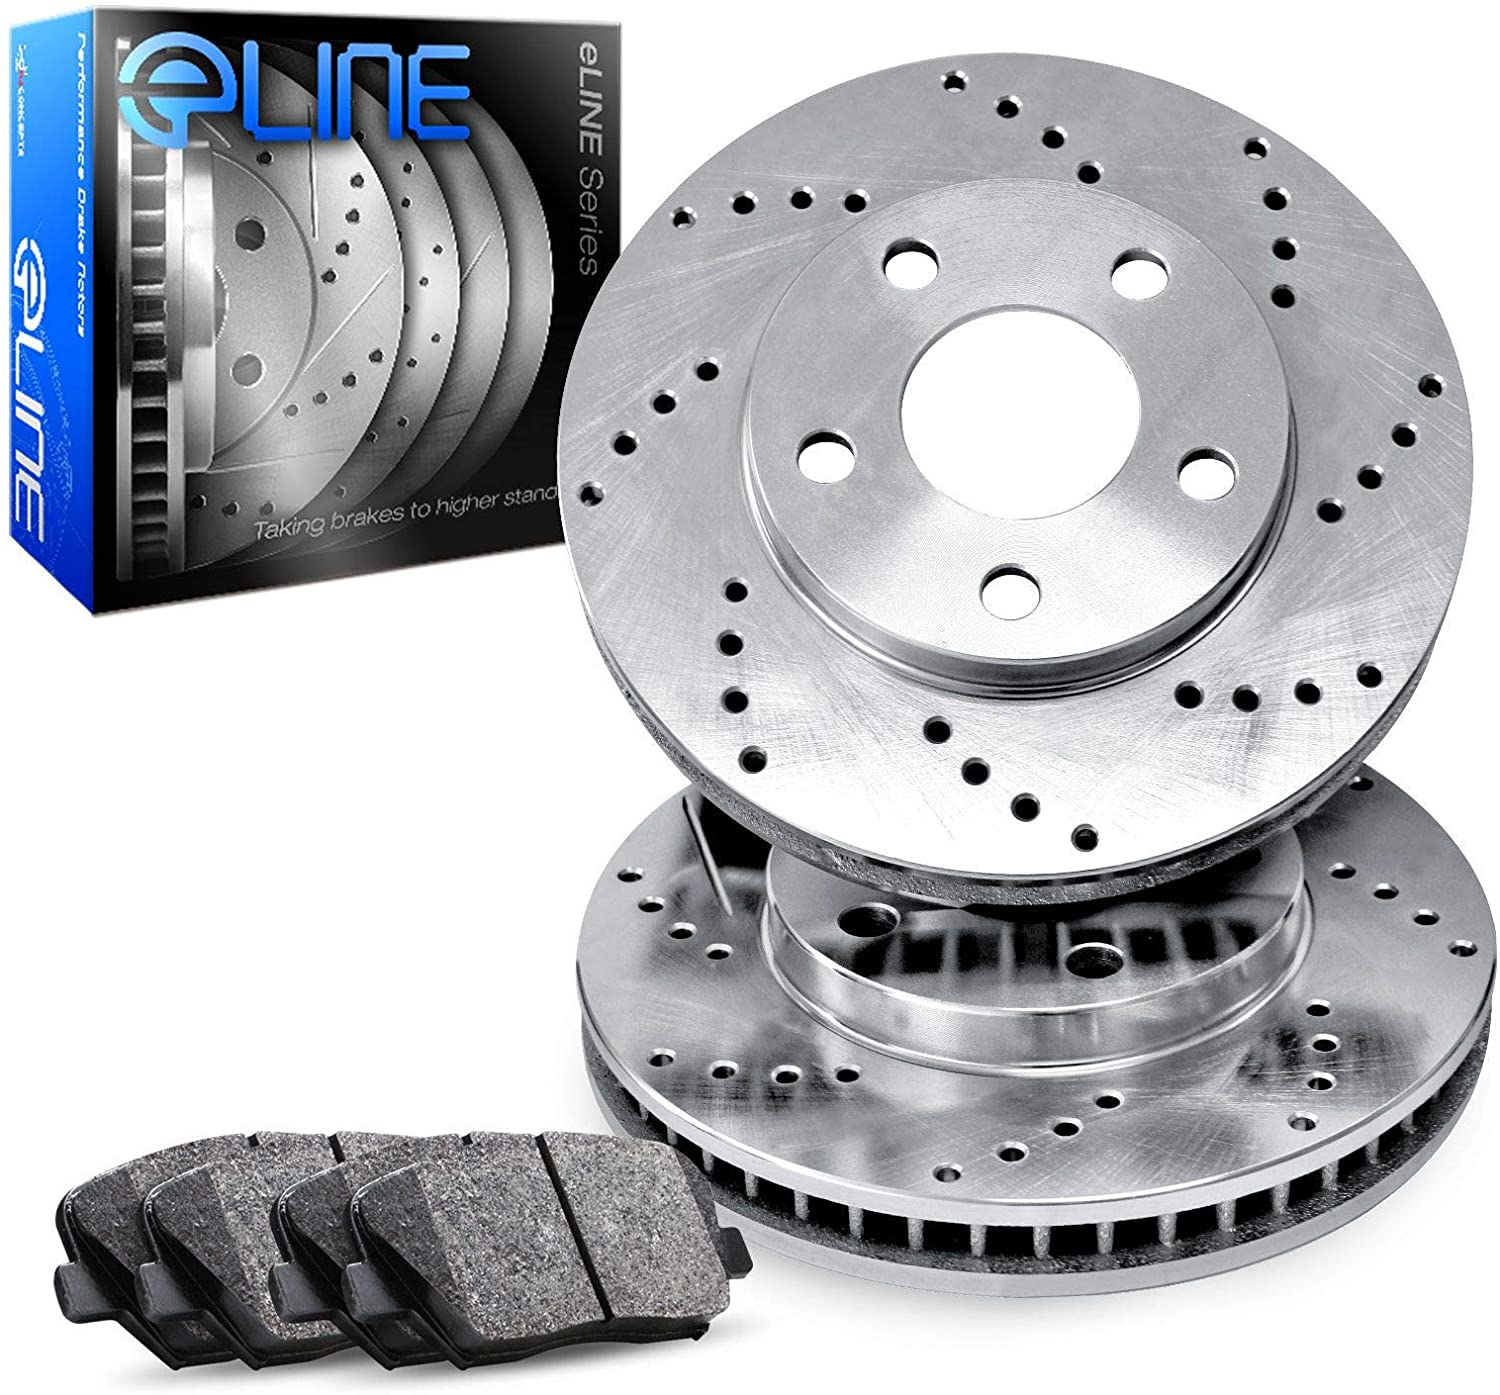 For 2005-2008 Porsche Boxster, Cayman R1 Concepts eLine Front Drilled Brake Rotors Kit + Semi-Met Pads